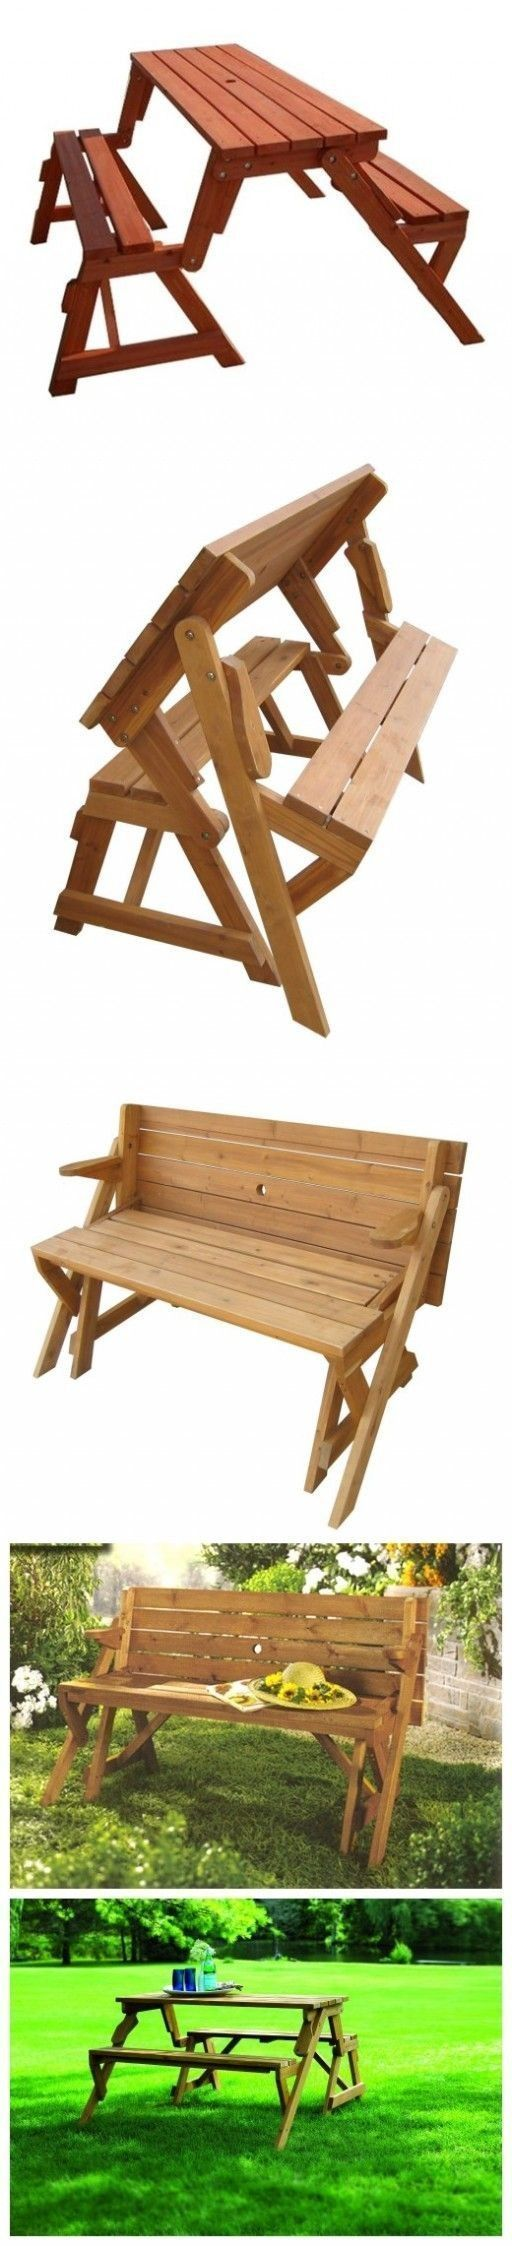 27 Best Aldo Leopold Benches Images On Pinterest Chairs